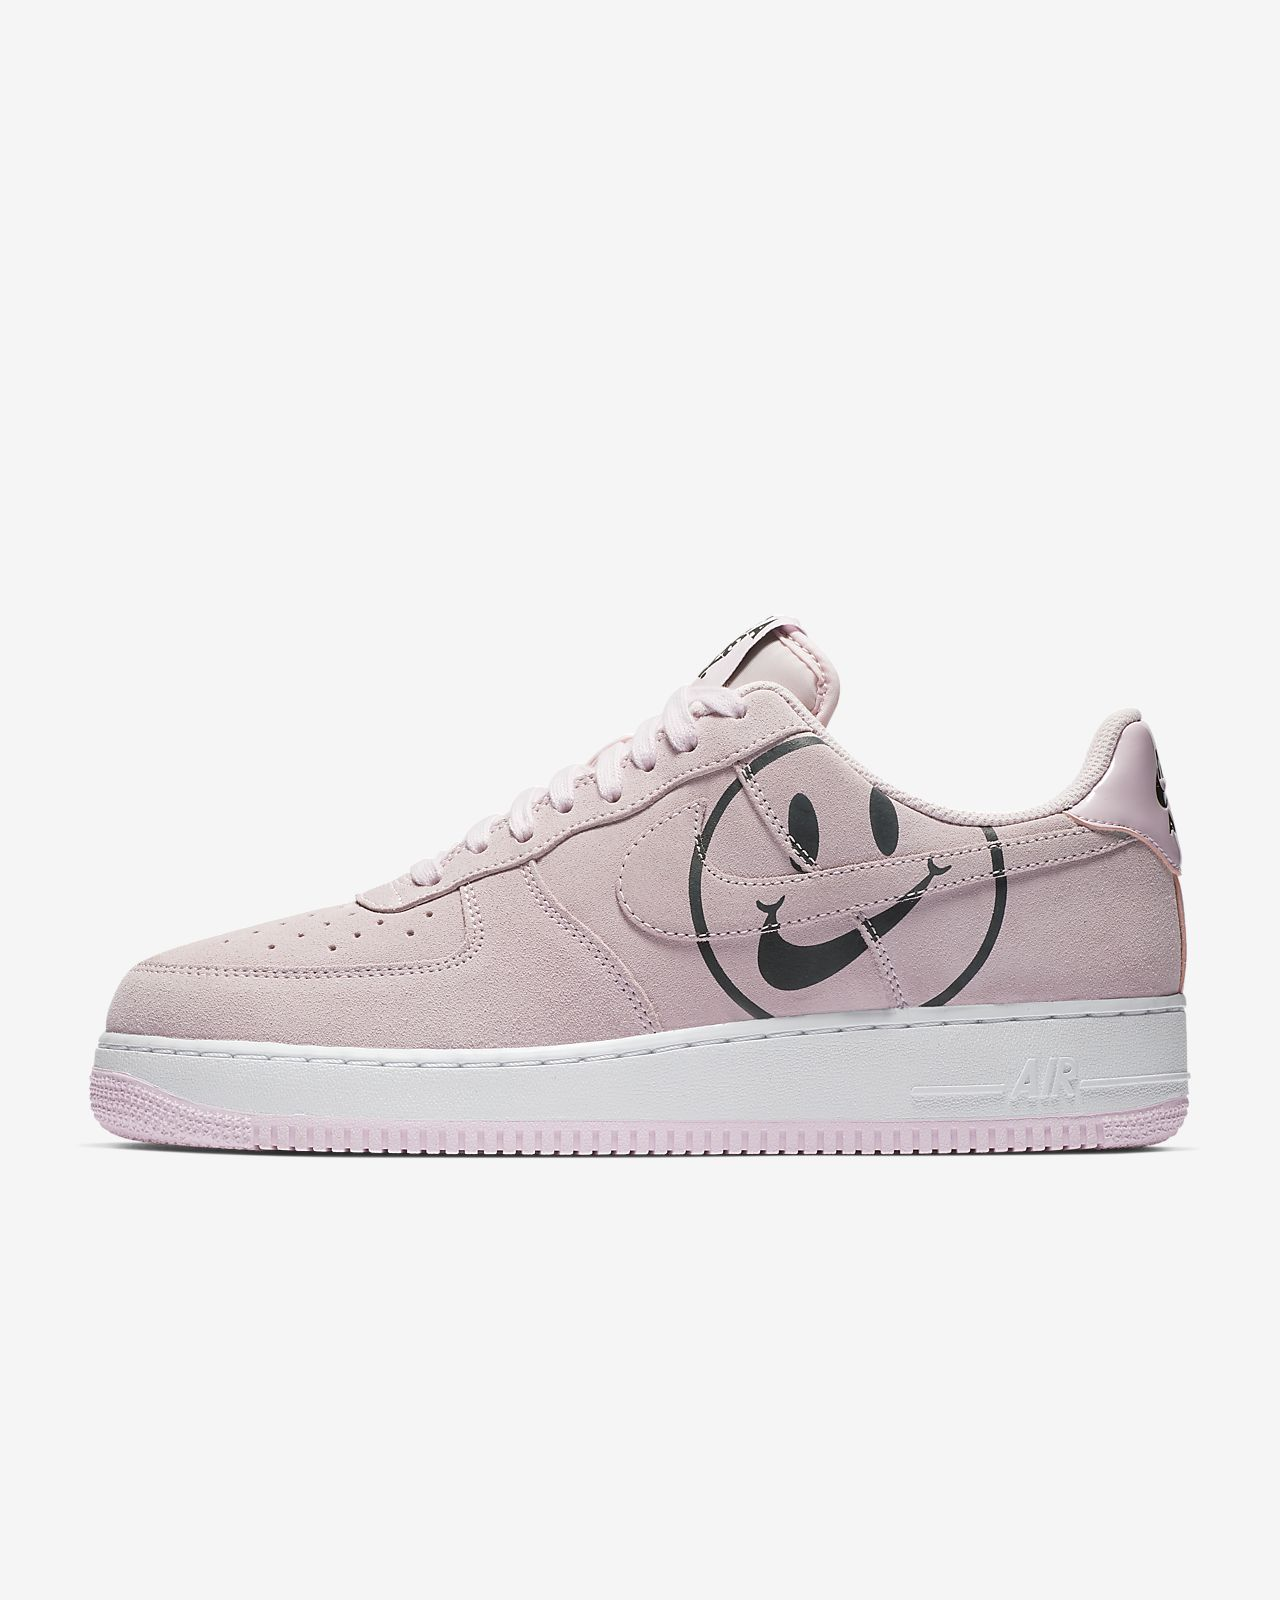 Nike Air Force 1 '07 LV8 ND Men's Shoe